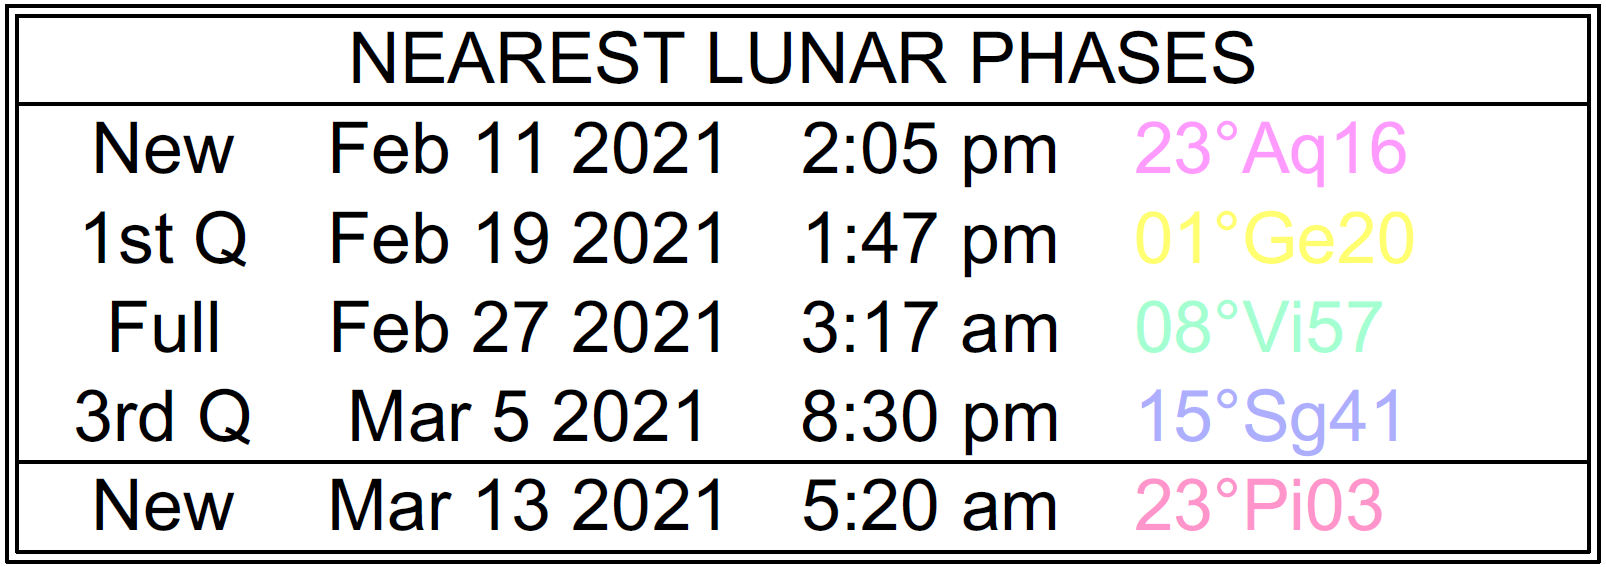 Lunar phases from New Moon on February 11 to New Moon on March 13 with eclipses